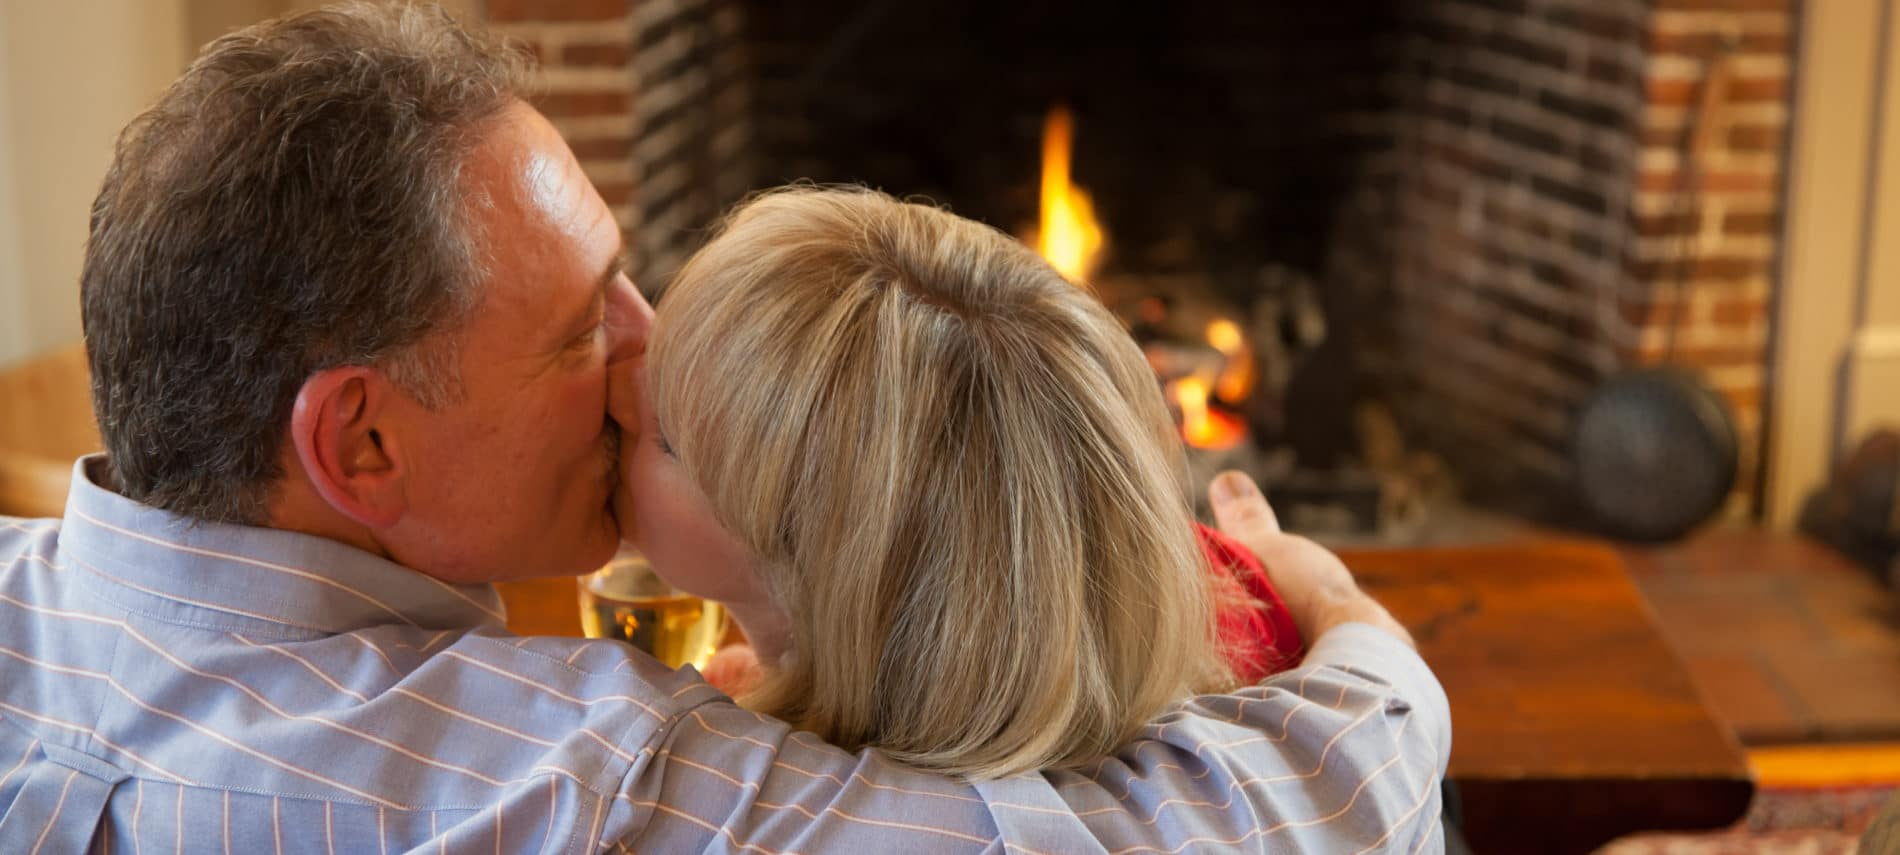 couple kissing in front of a fireplace